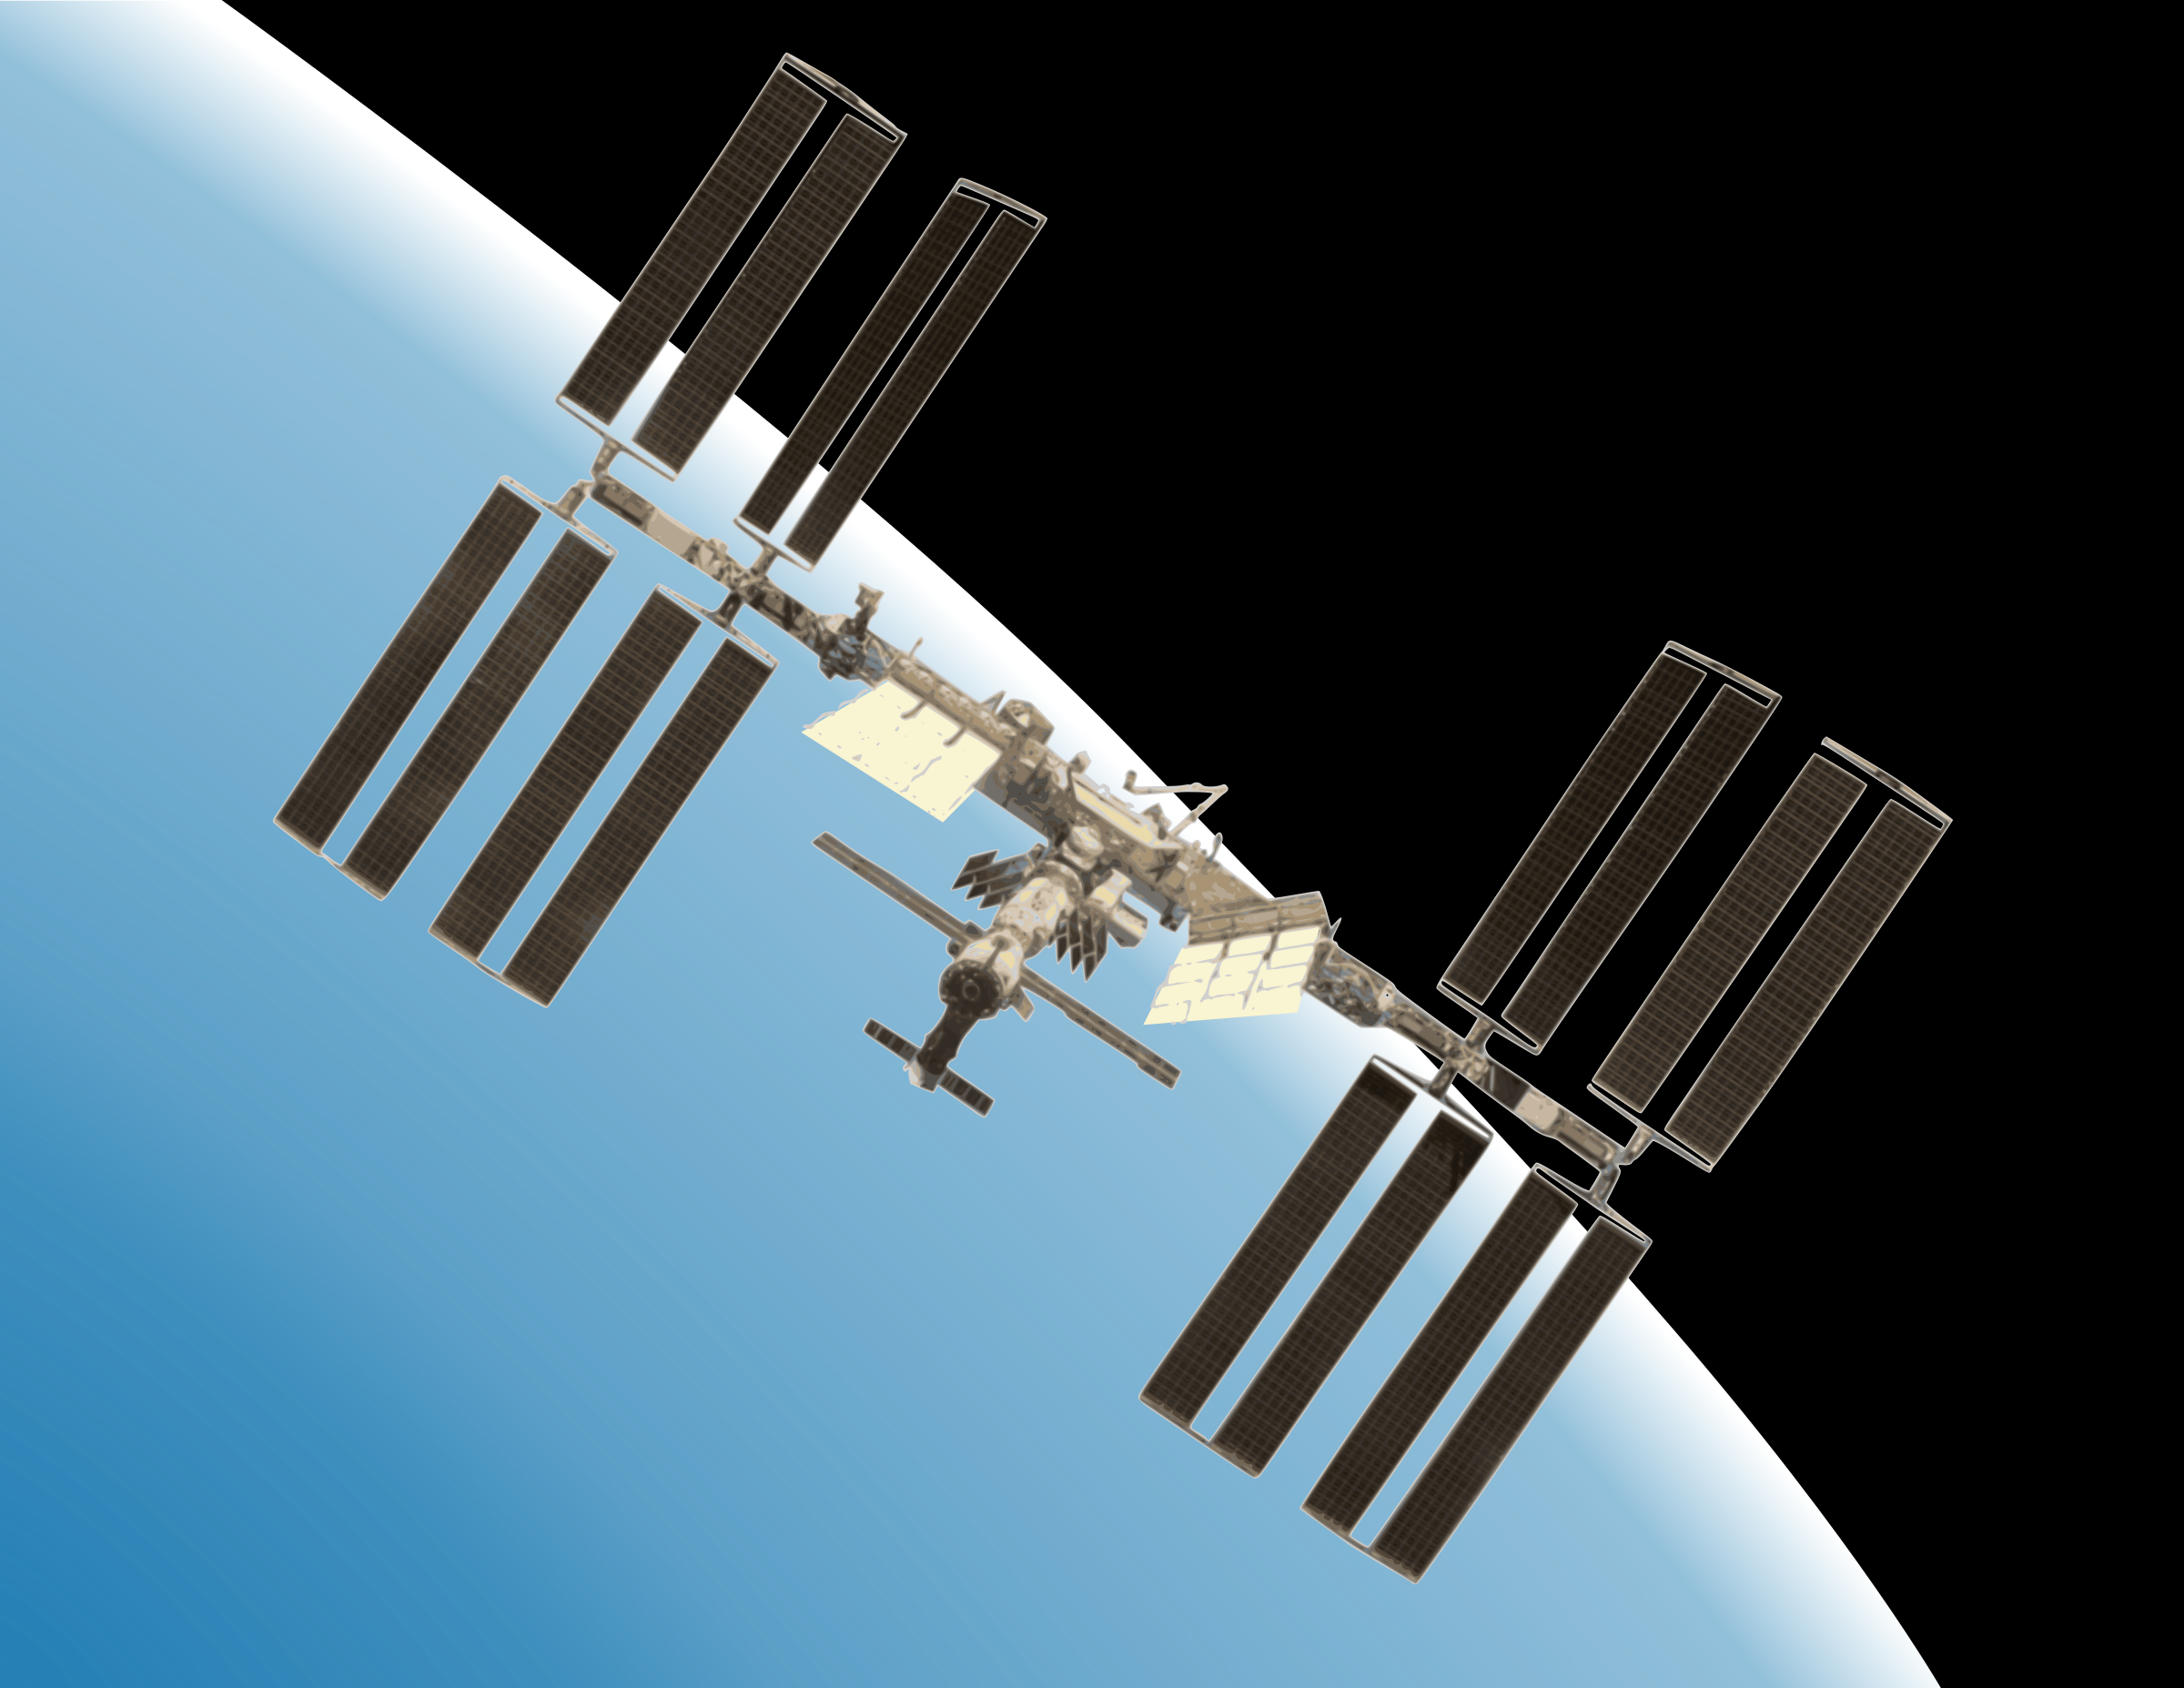 International Space Station clipart #5, Download drawings